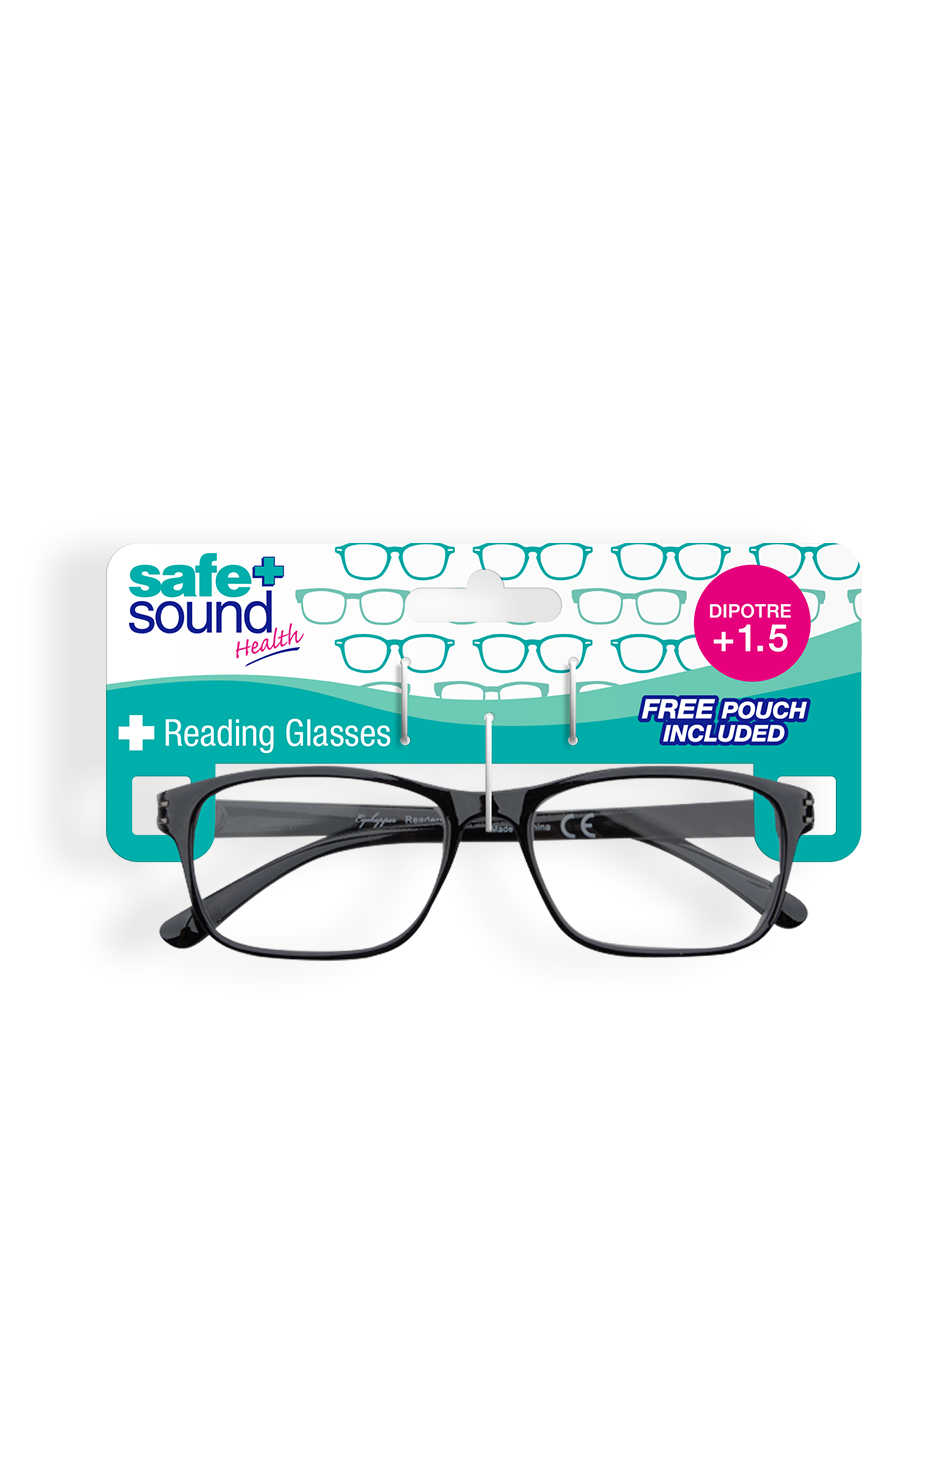 Safe and Sound Health Wayfarer Style Reading Glasses 1.5 Dioptre